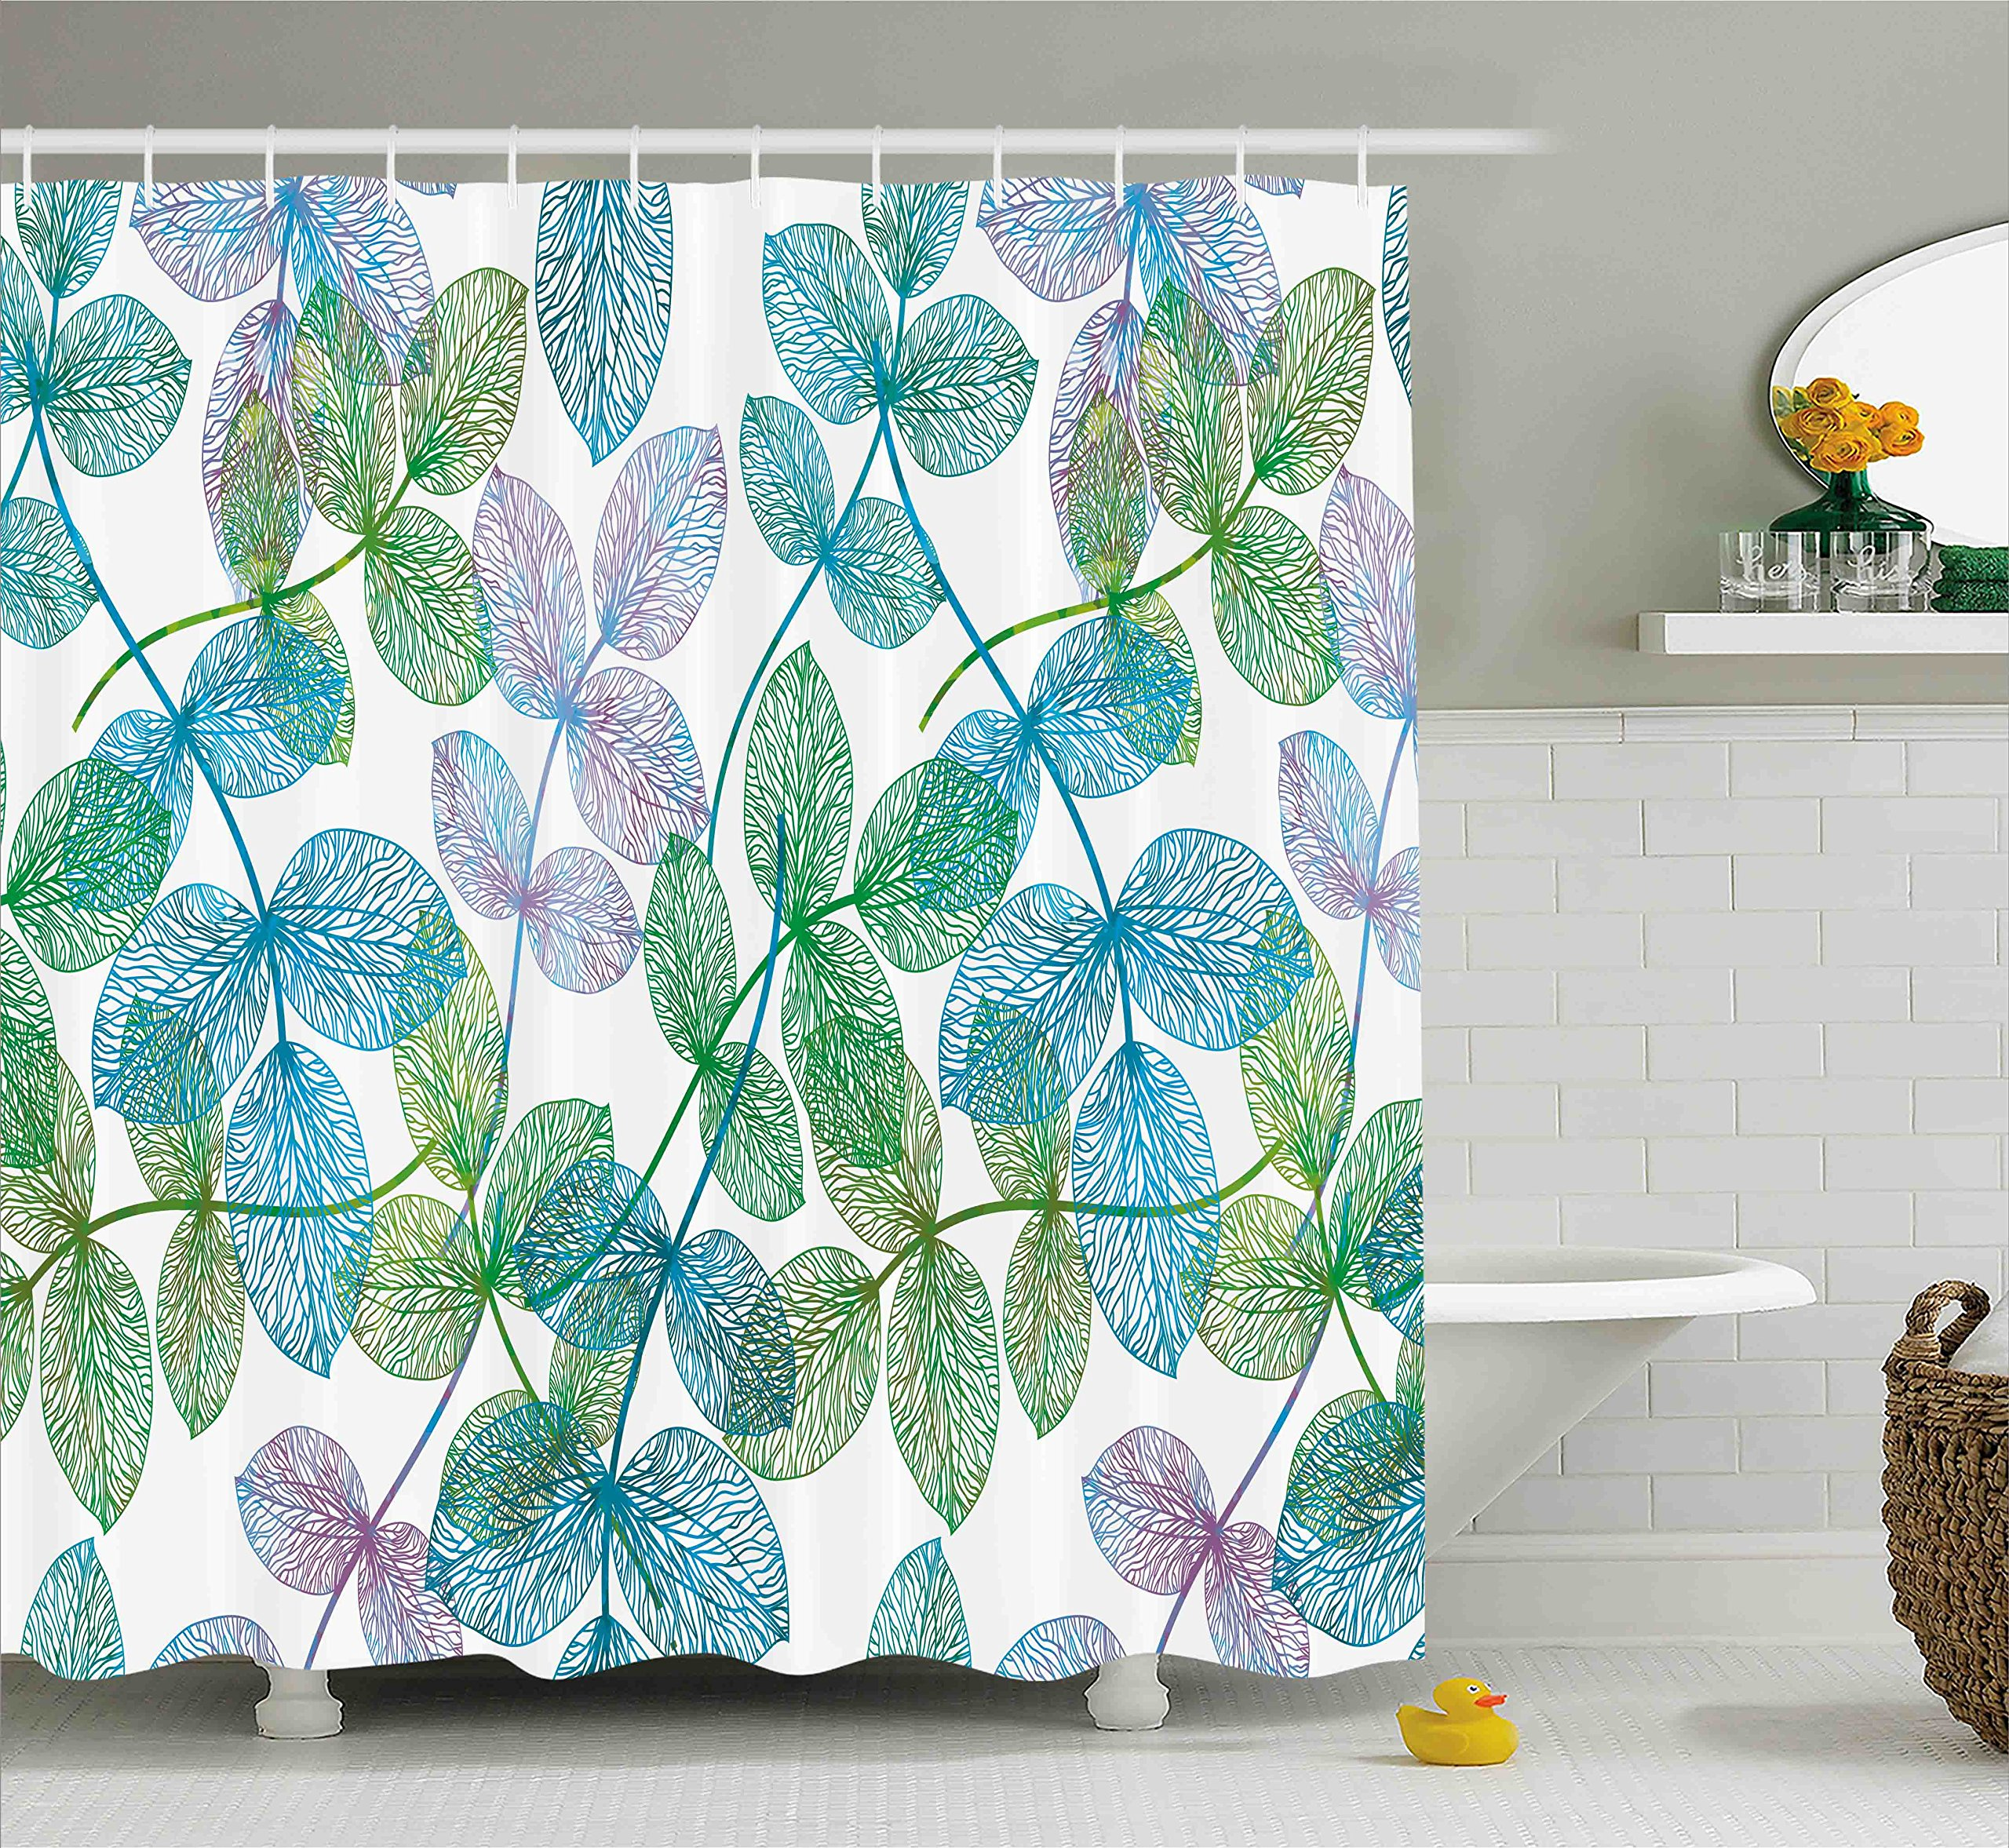 Ambesonne Floral Shower Curtain, Flowers Leaves Ivy Vein Like Rainbow Ombre Colored Art Print, Fabric Bathroom Decor Set with Hooks, 84 Inches Extra Long, Blue Green